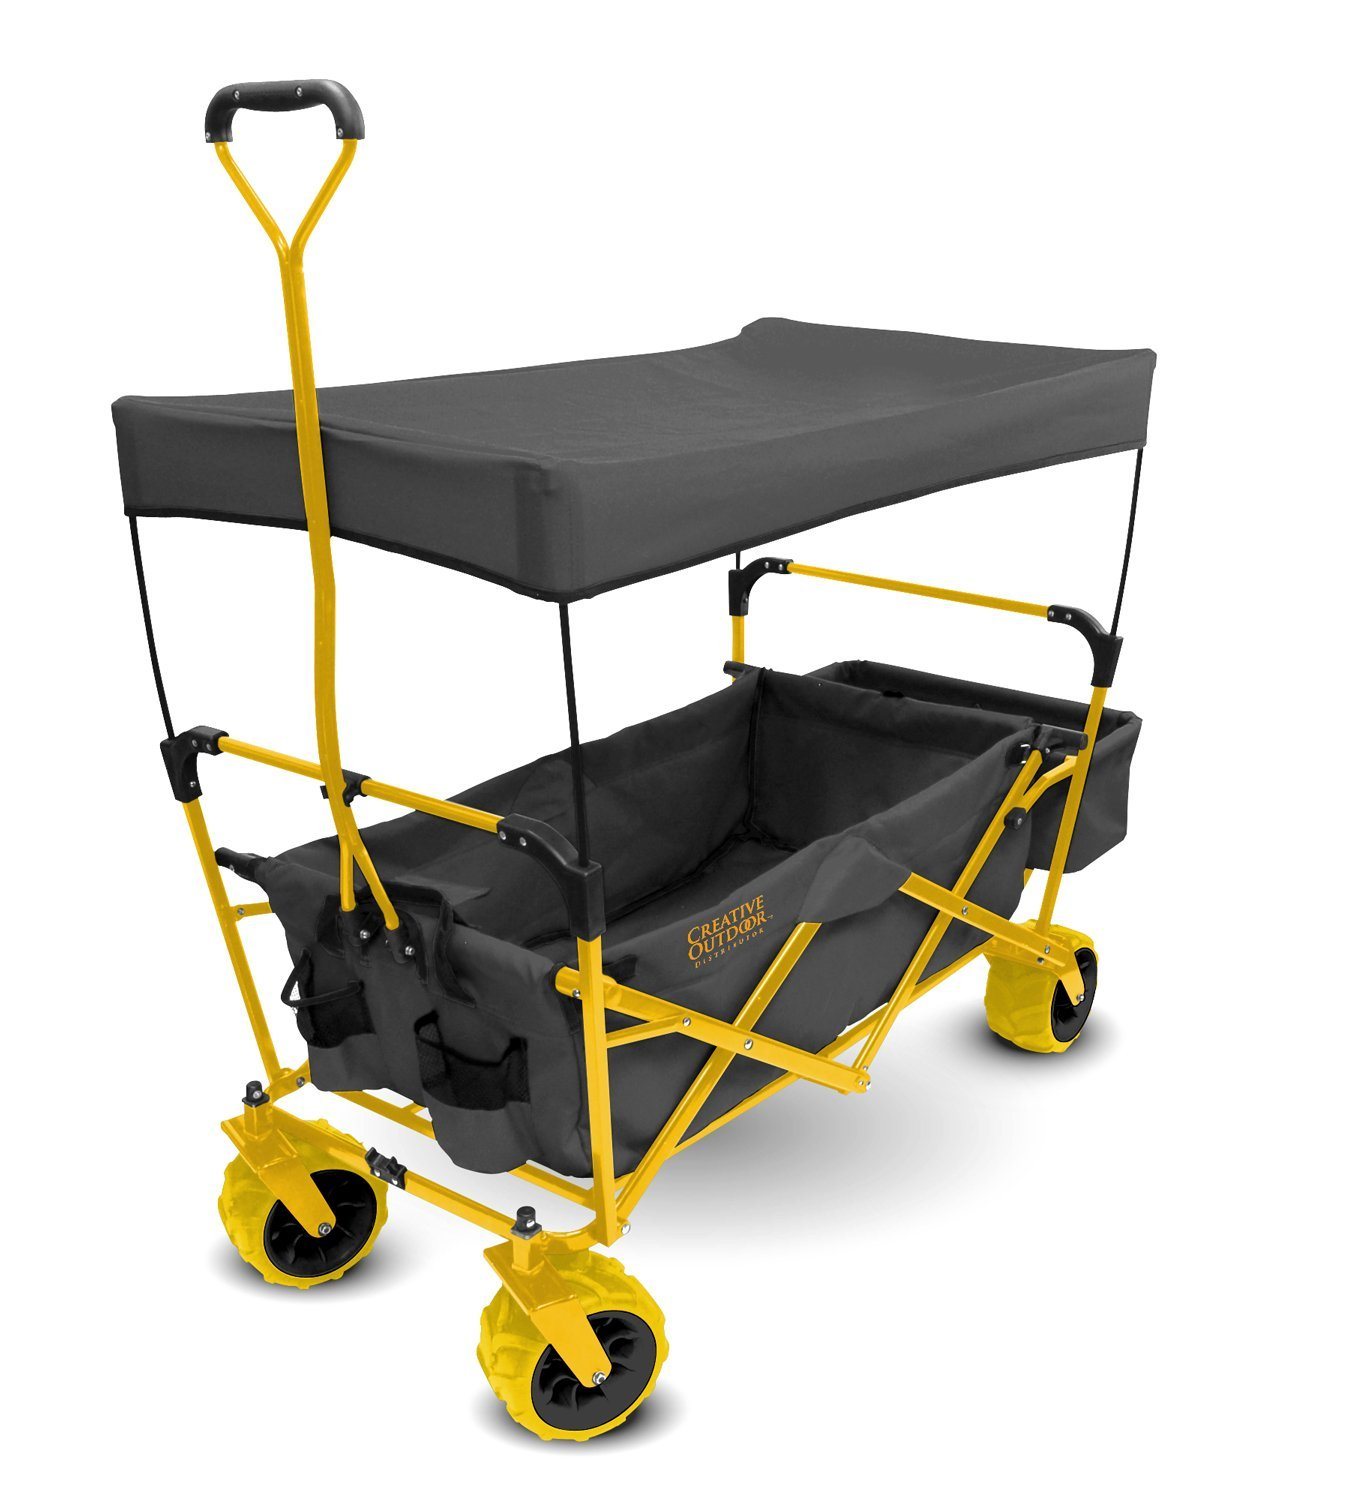 Creative Outdoor Distributor All-Terrain Collapsible Wagon with Shade Canopy (Gray/Yellow) - Use for Gardening, Tailgating, Beach Trips, Picnics, and More 900184 by Creative Outdoor Distributor